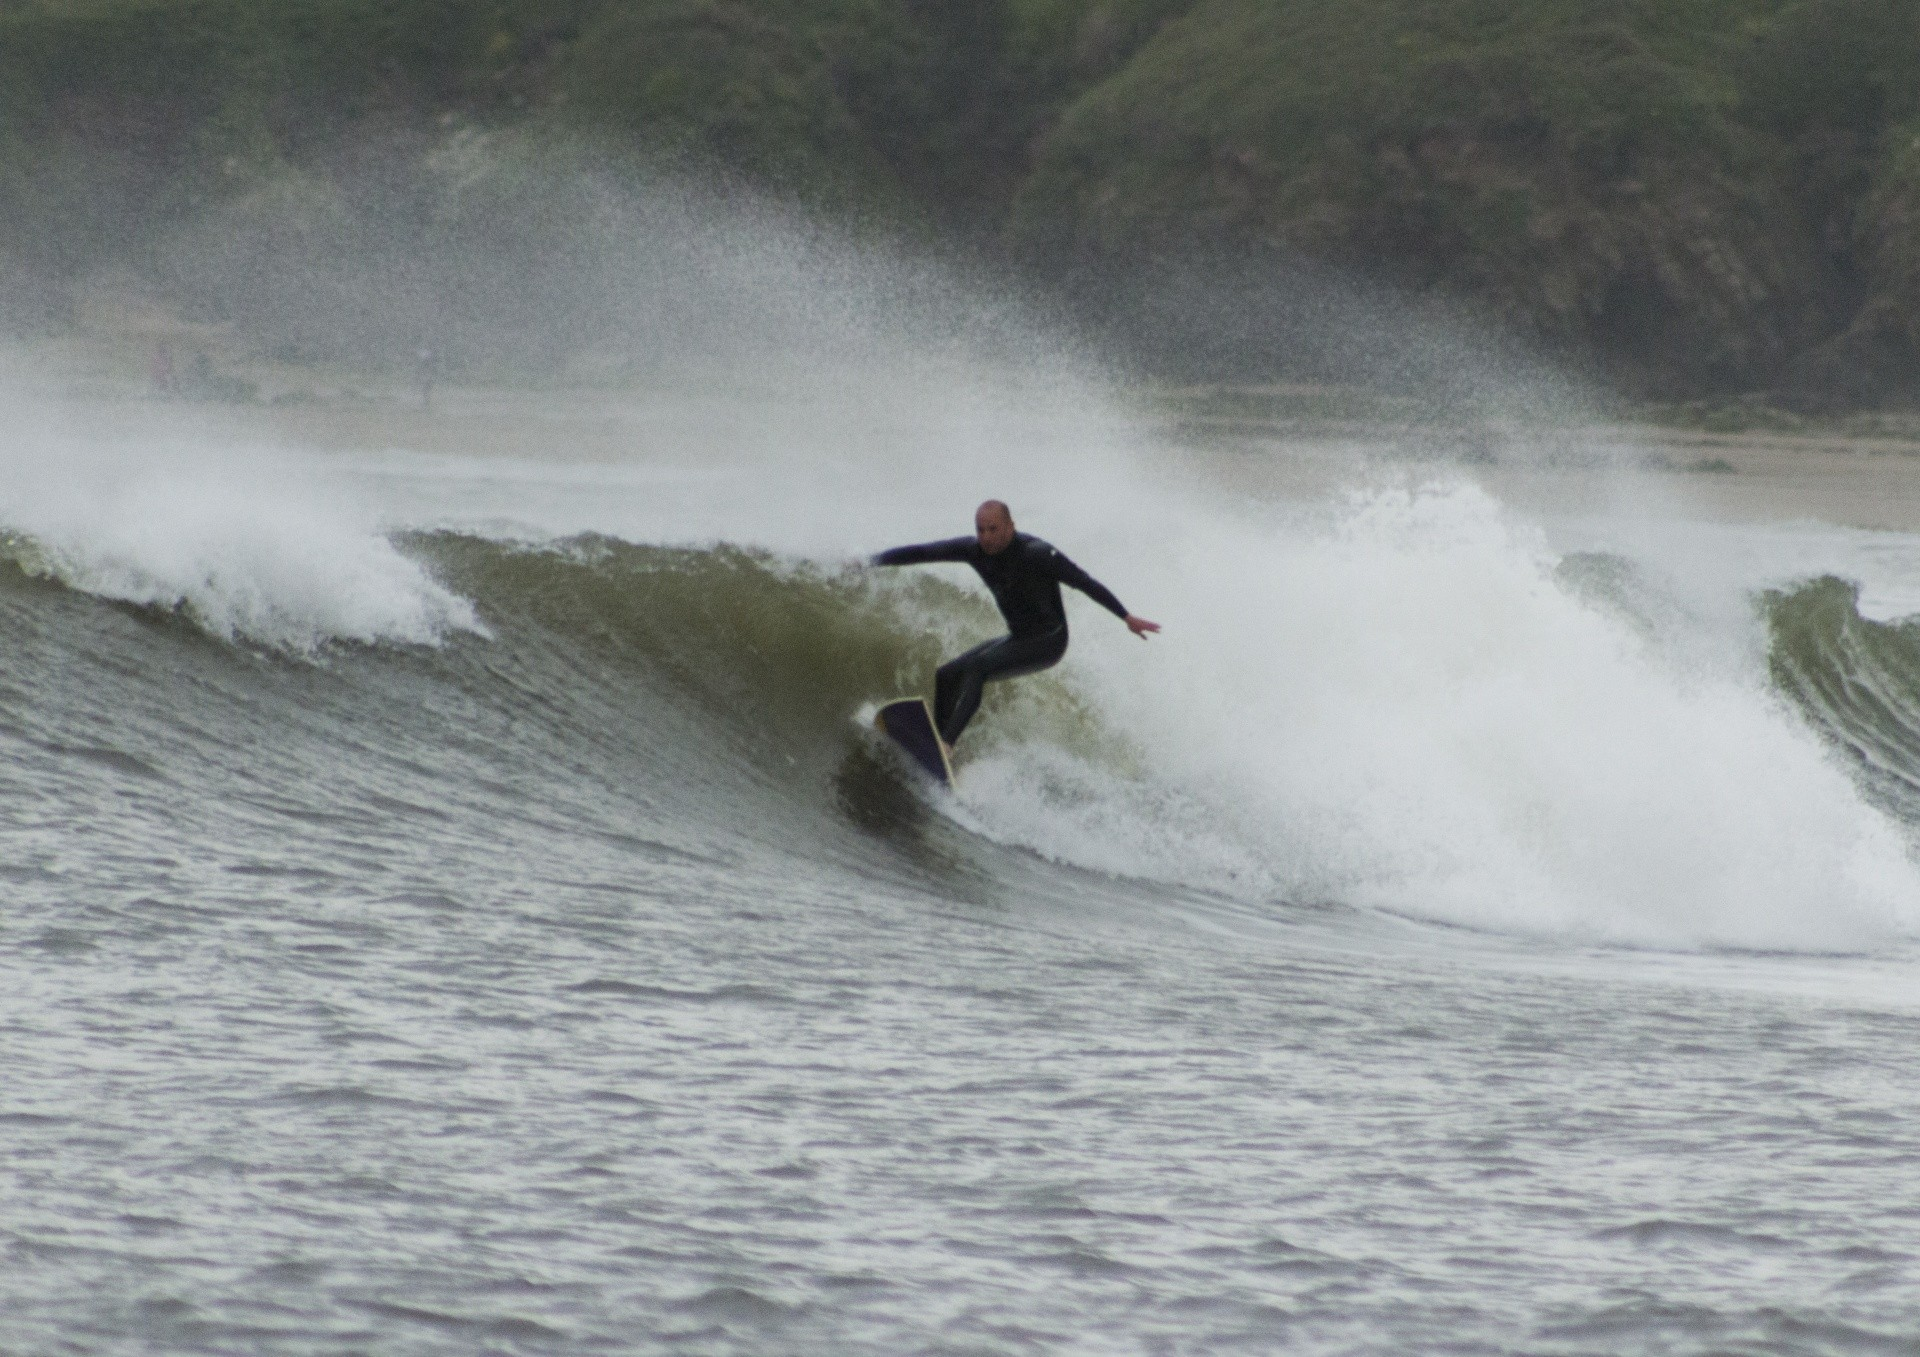 Justin Waye's photo of Bantham